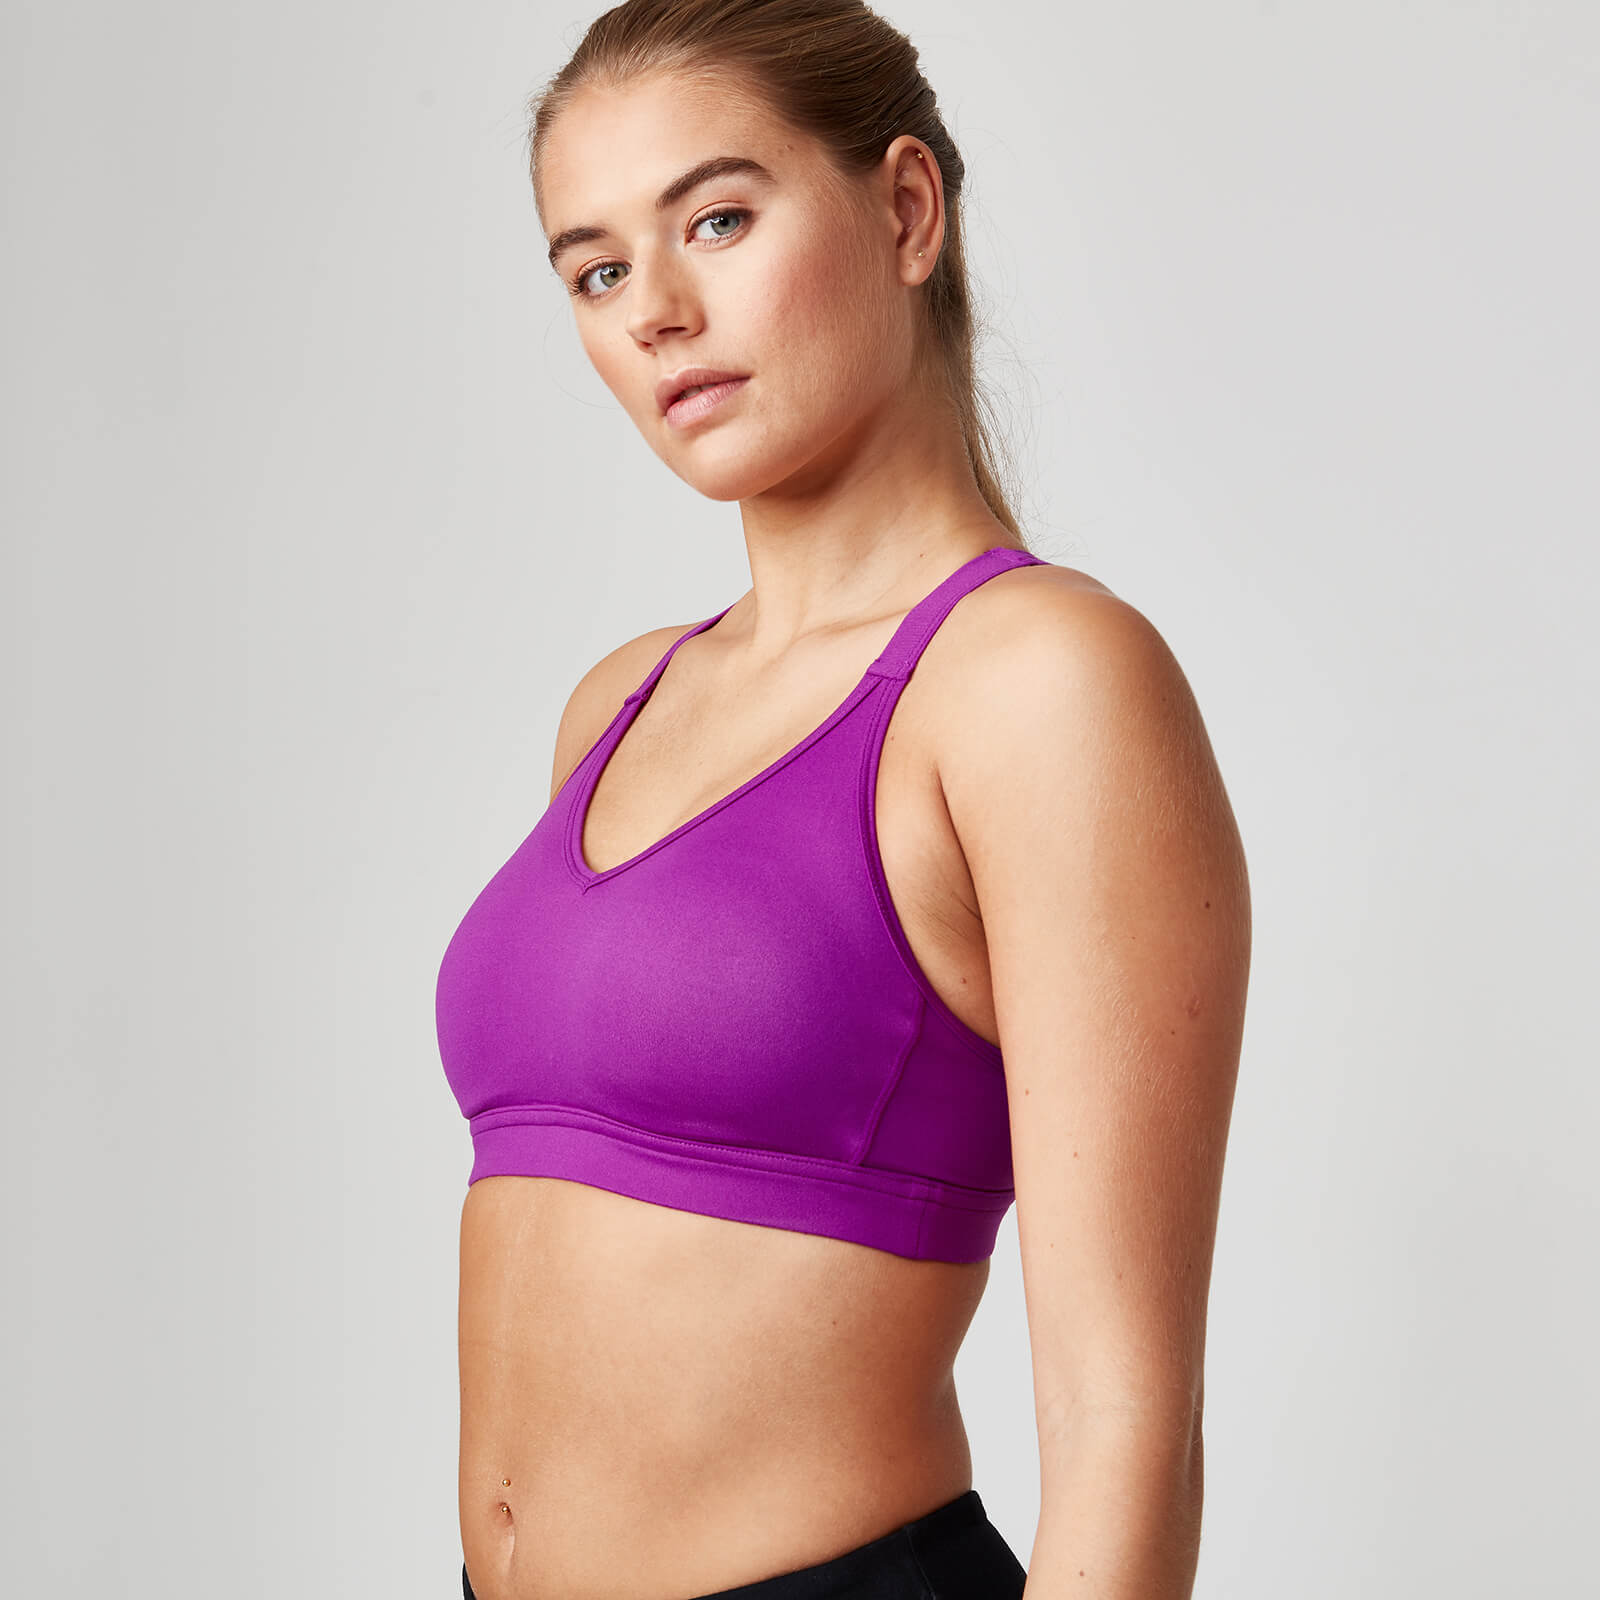 Myprotein Classic Heartbeat Sports Bra - XS, Violet